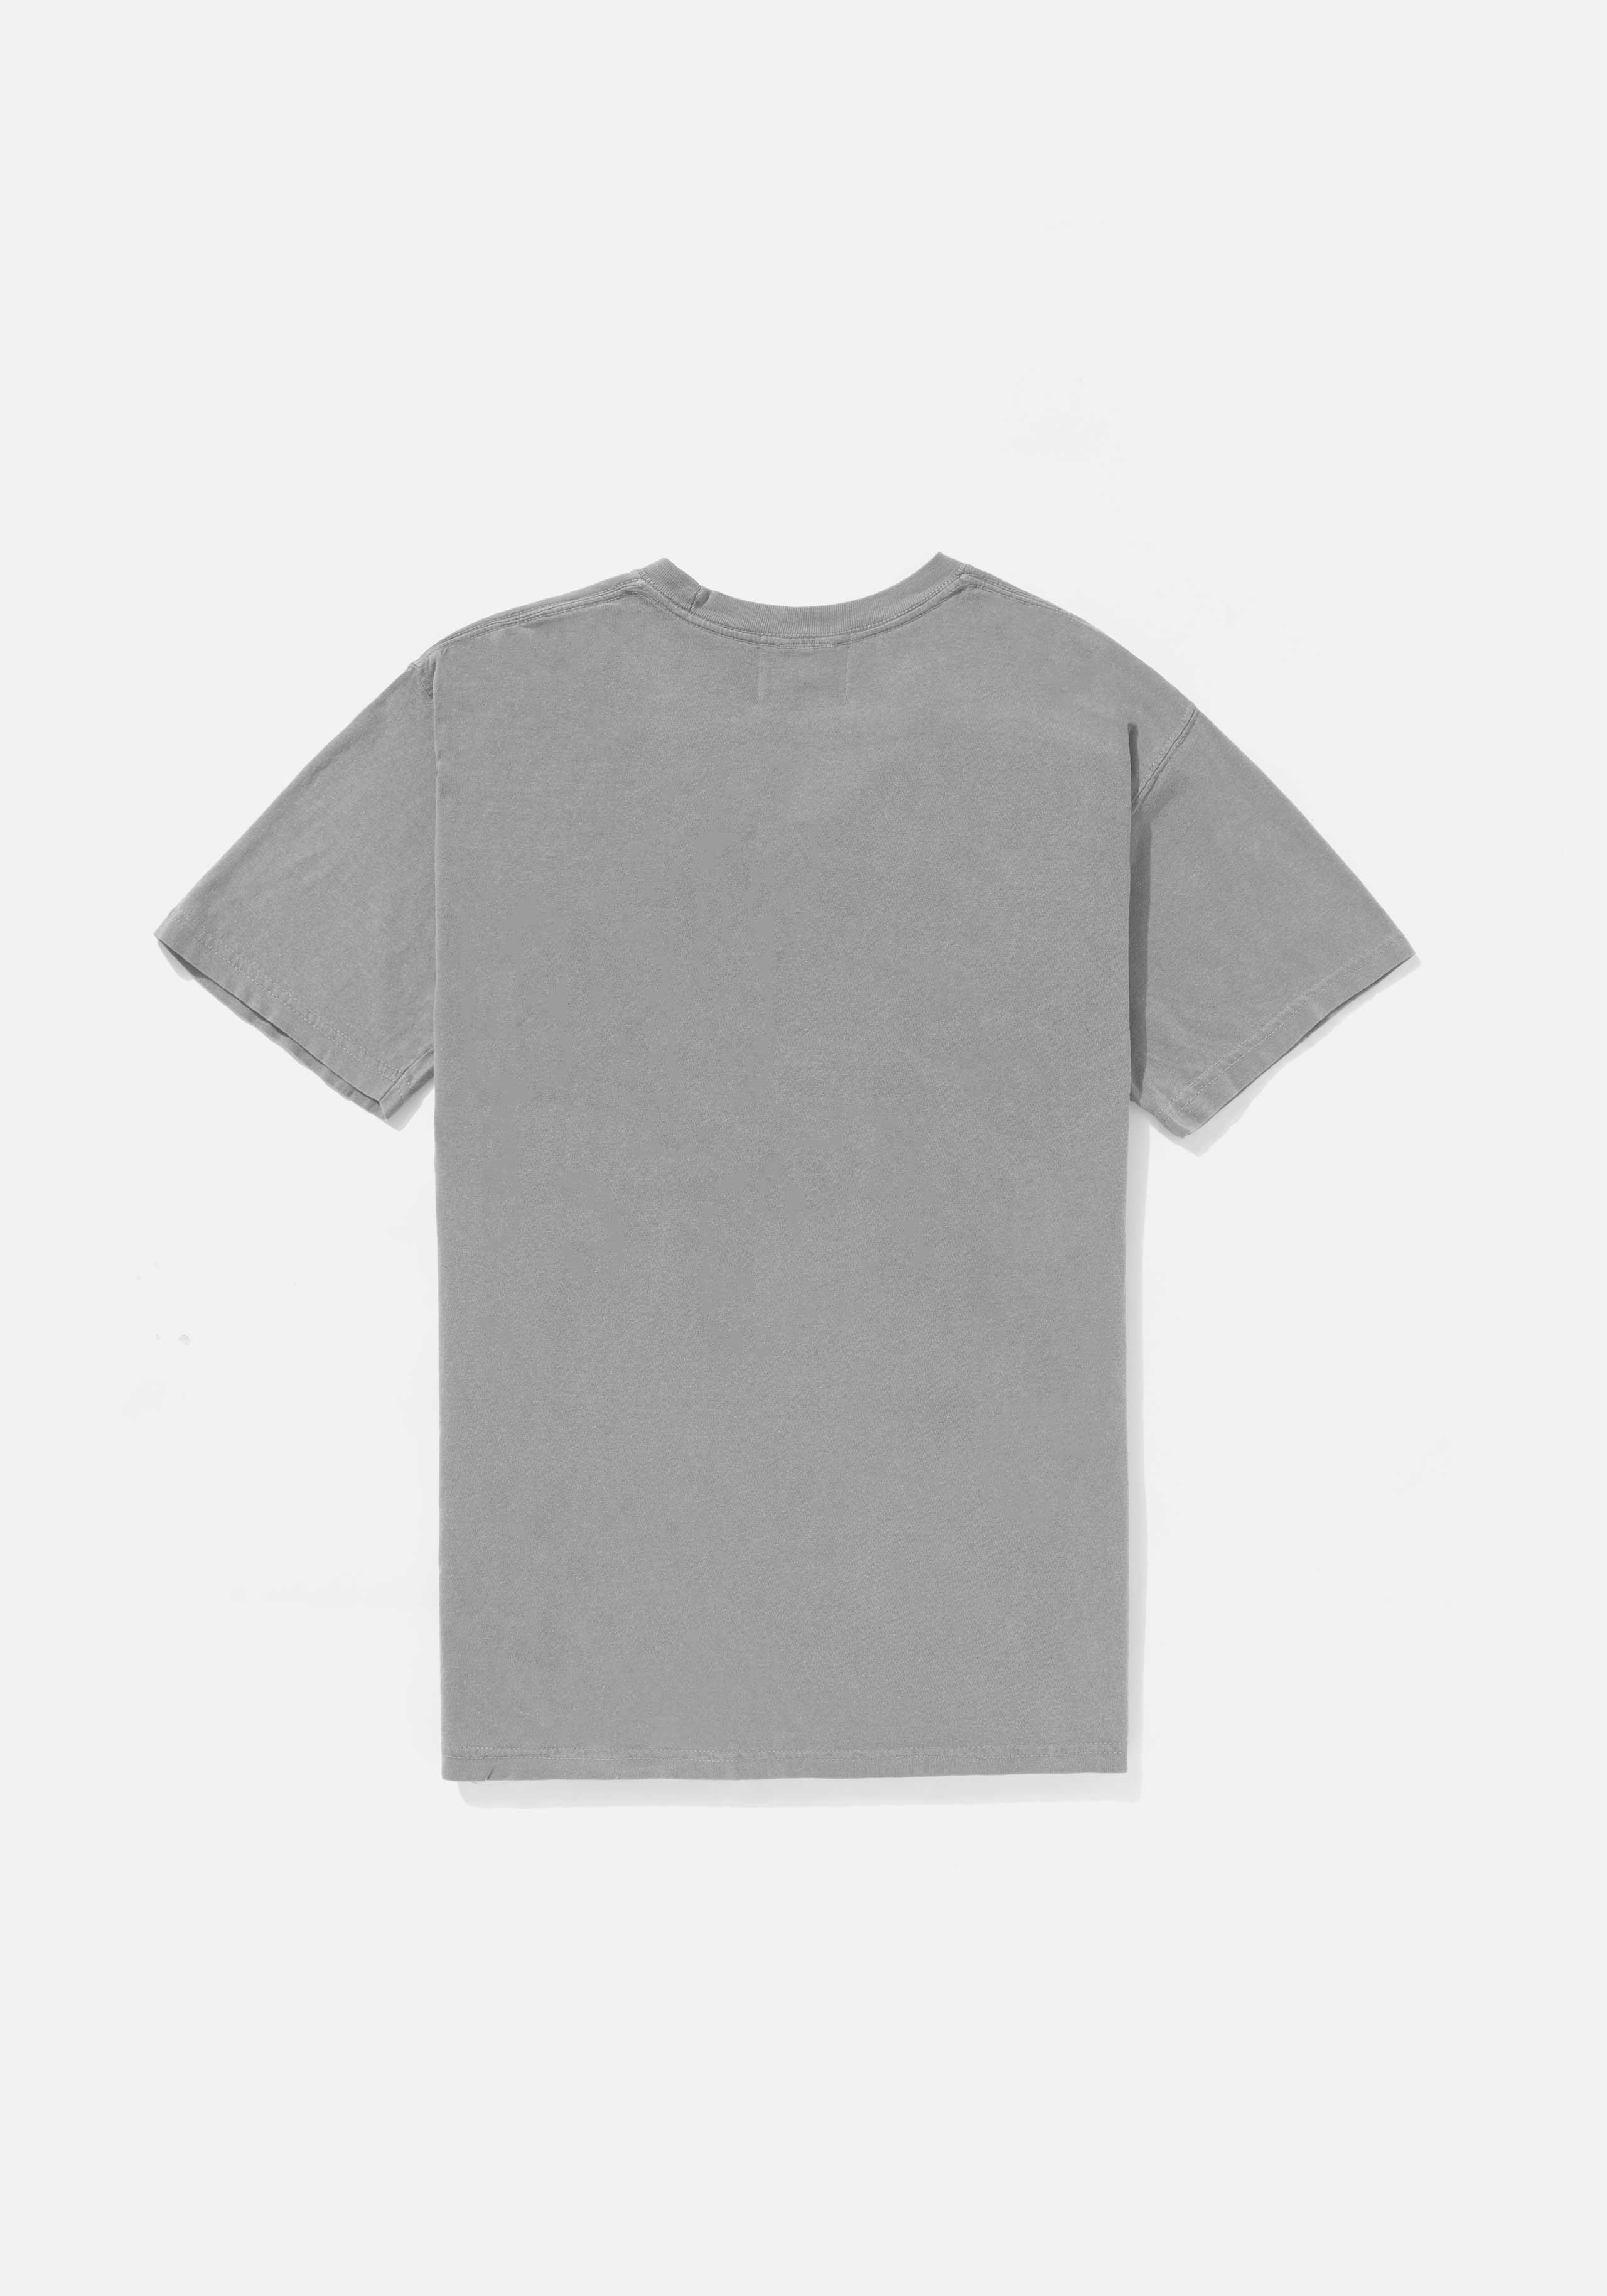 mki pigment dyed pocket tee 2